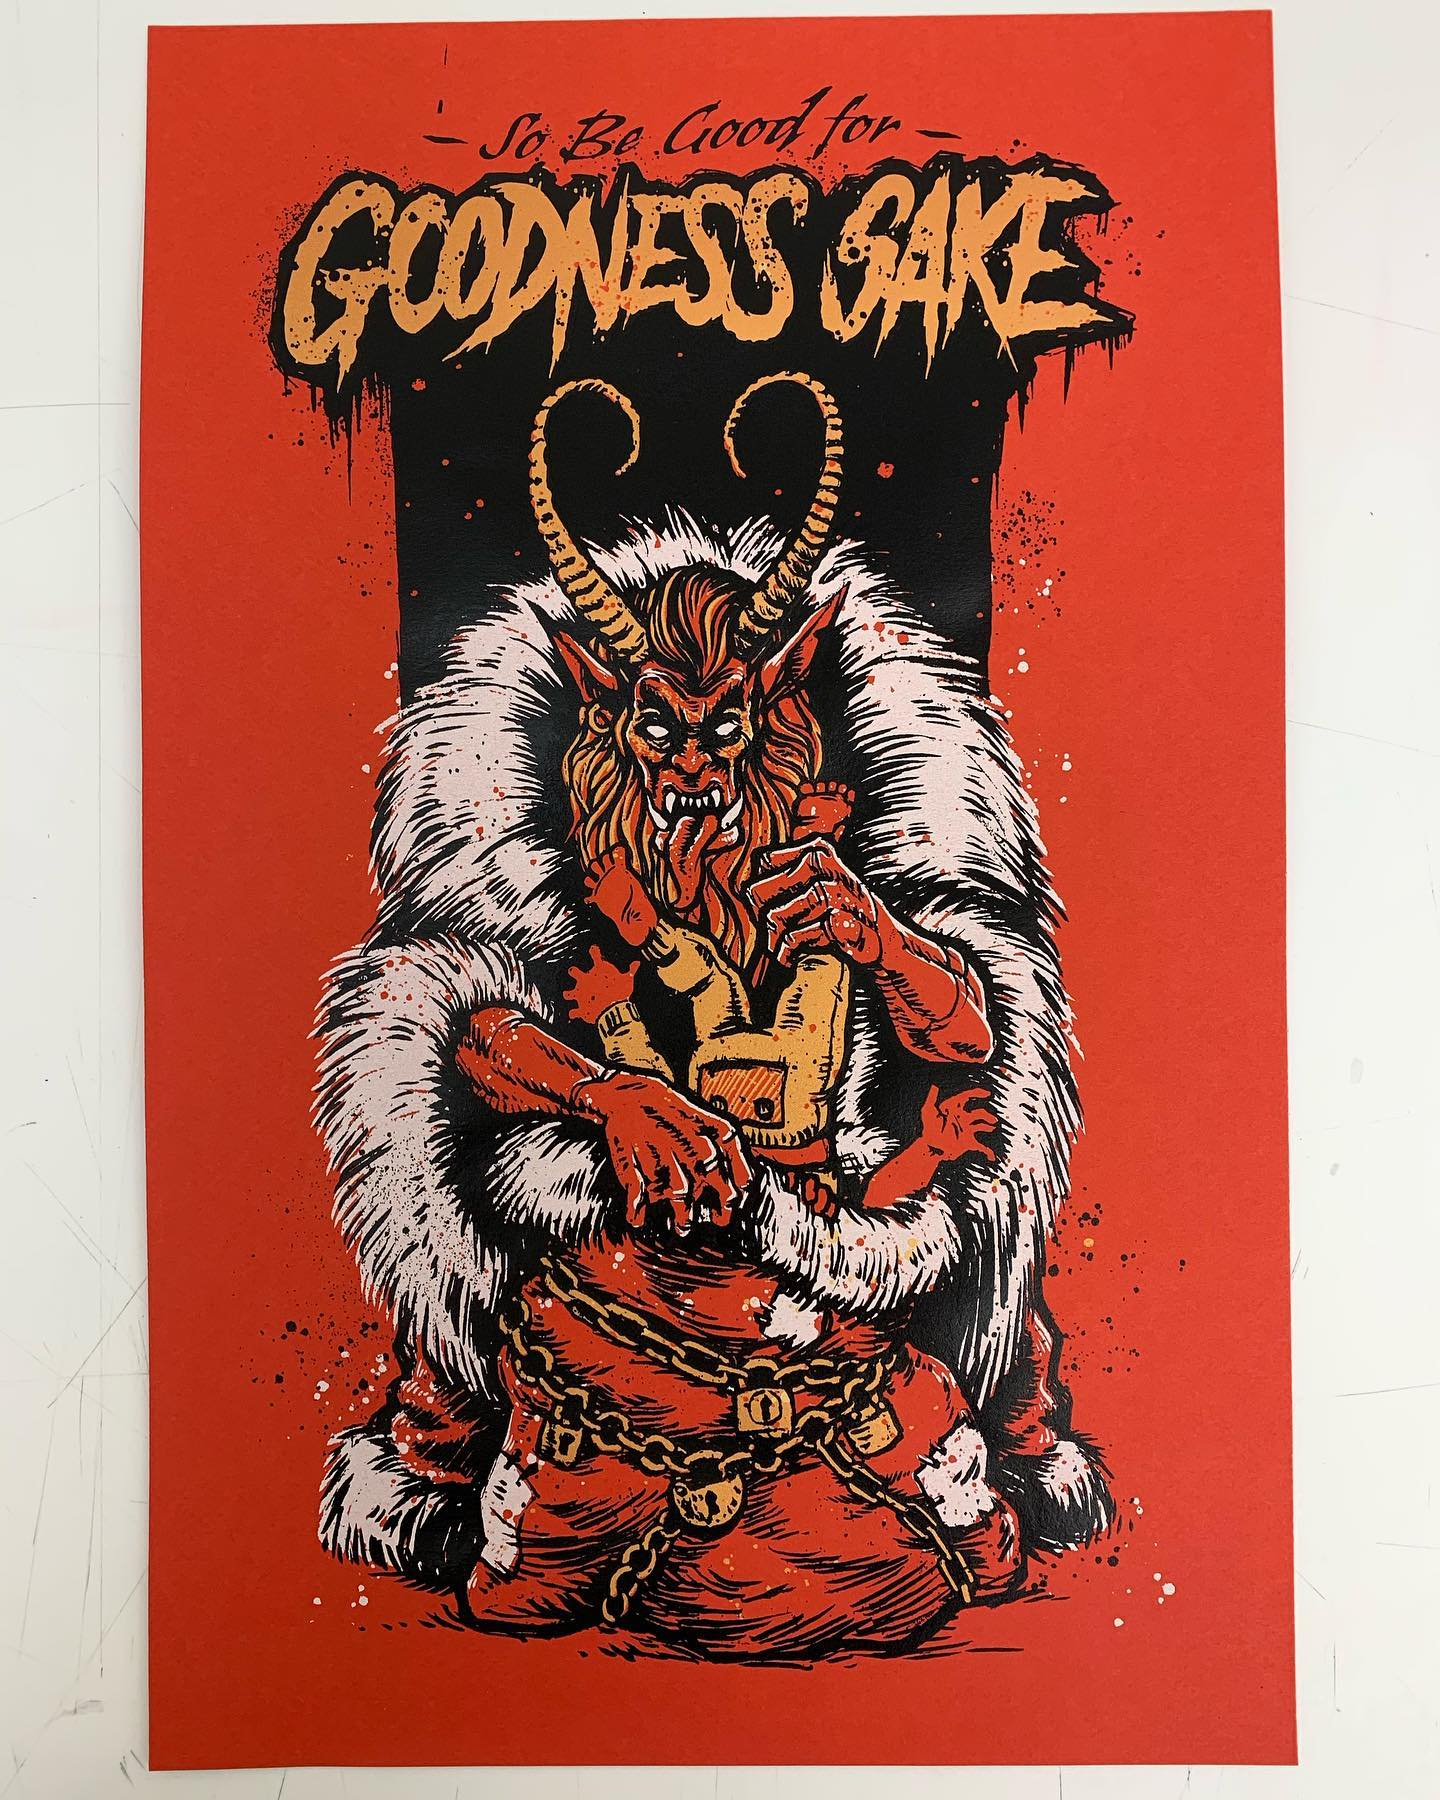 It's that time of year again. Bad kids get beaten with reeds and eaten in caves. There are still some #Krampus posters available in my shop. #screenprint #artprint #happyholidays